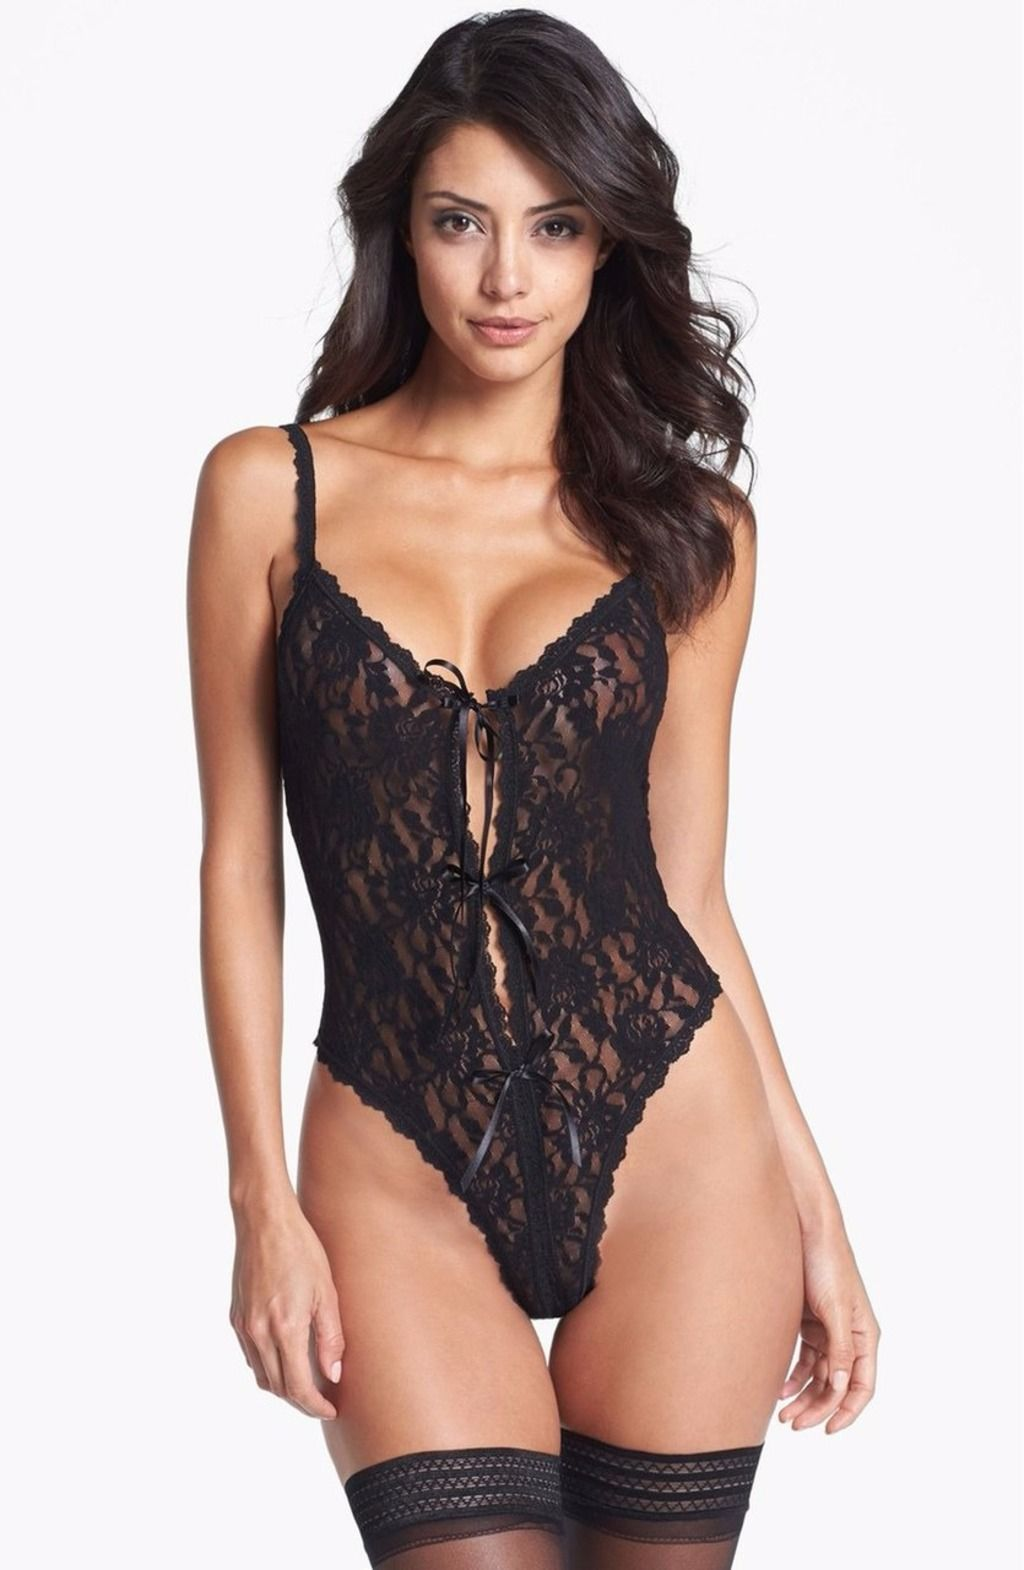 6c0b27eb65b2 HANKY PANKY SIGNATURE LACE OPEN GUSSET TEDDY BLACK $69 - - FREE WORLD  SHIPPING - BEST PRICES GUARANTEED AT SPANO LINGERIE SHOP -  spanolingerie.selz.com